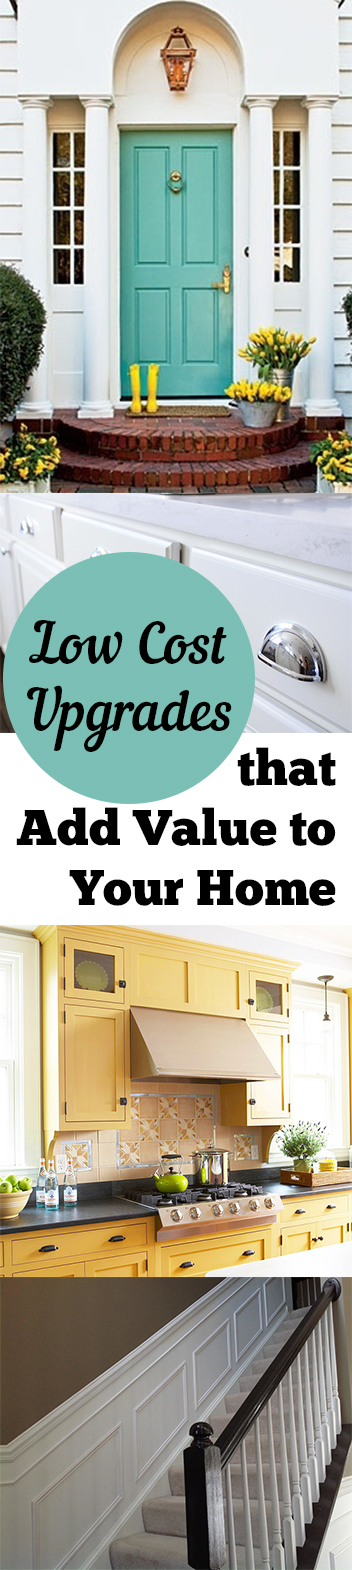 Cheap home DIY, home upgrades, DIY home upgrades, home improvement, popular pin, cheap DIY home decor.